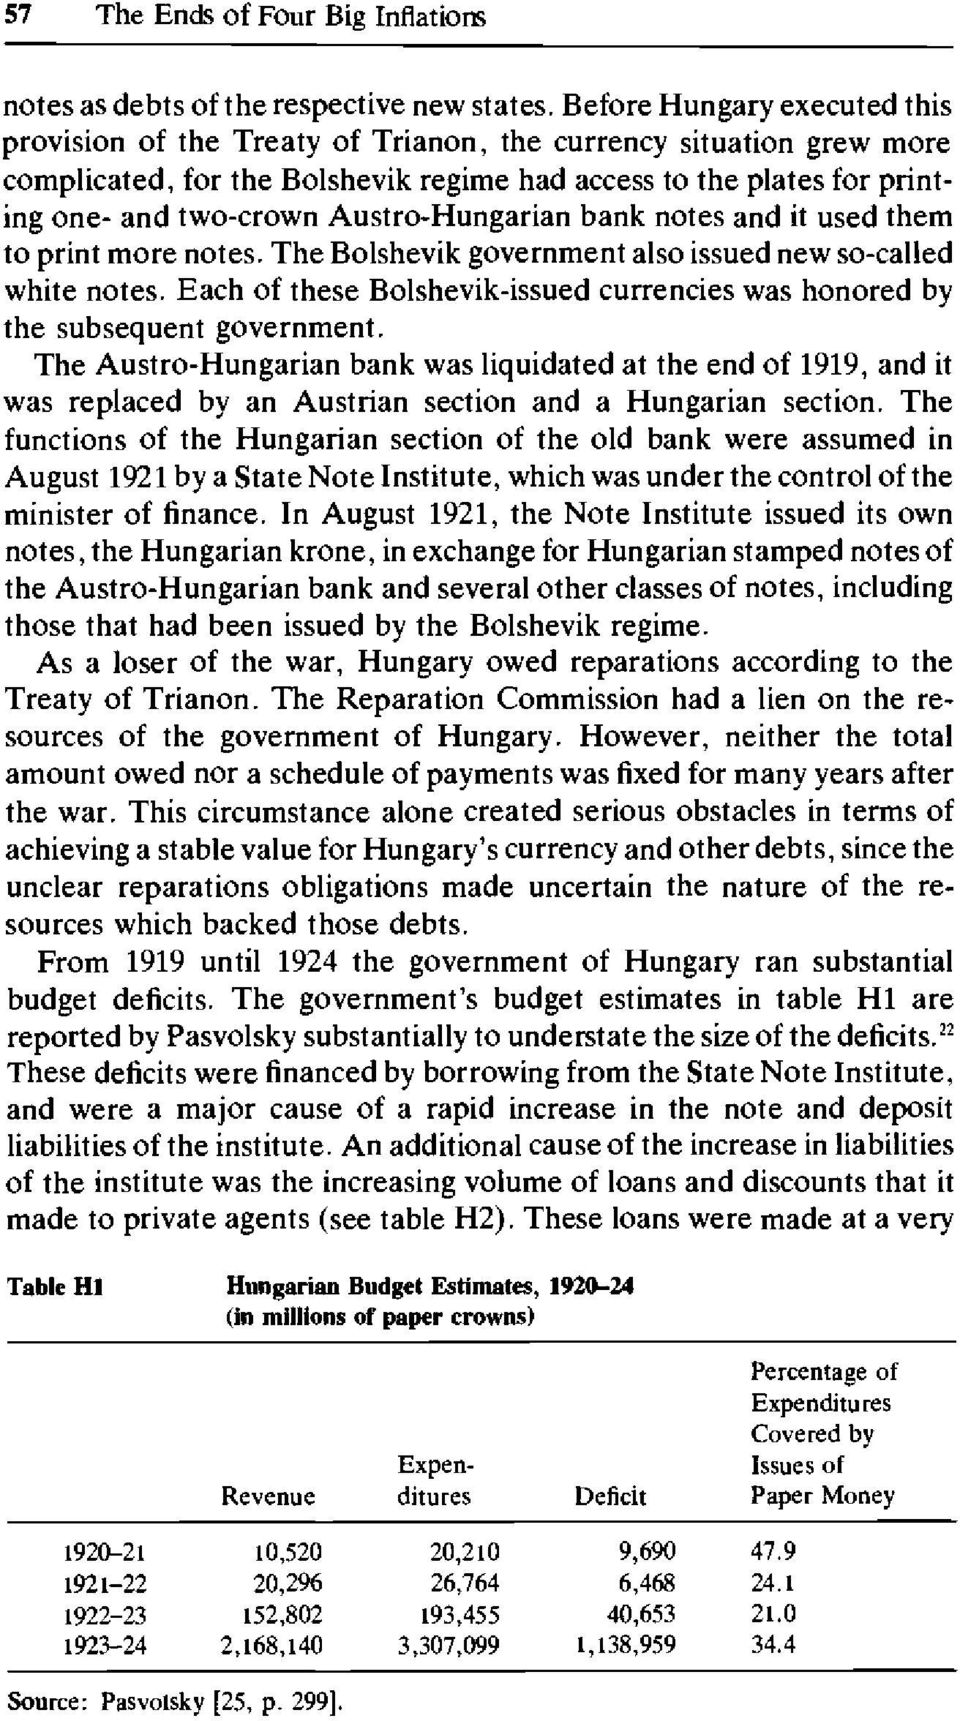 Austro-Hungarian bank notes and it used them to print more notes. The Bolshevik government also issued new so-called white notes.